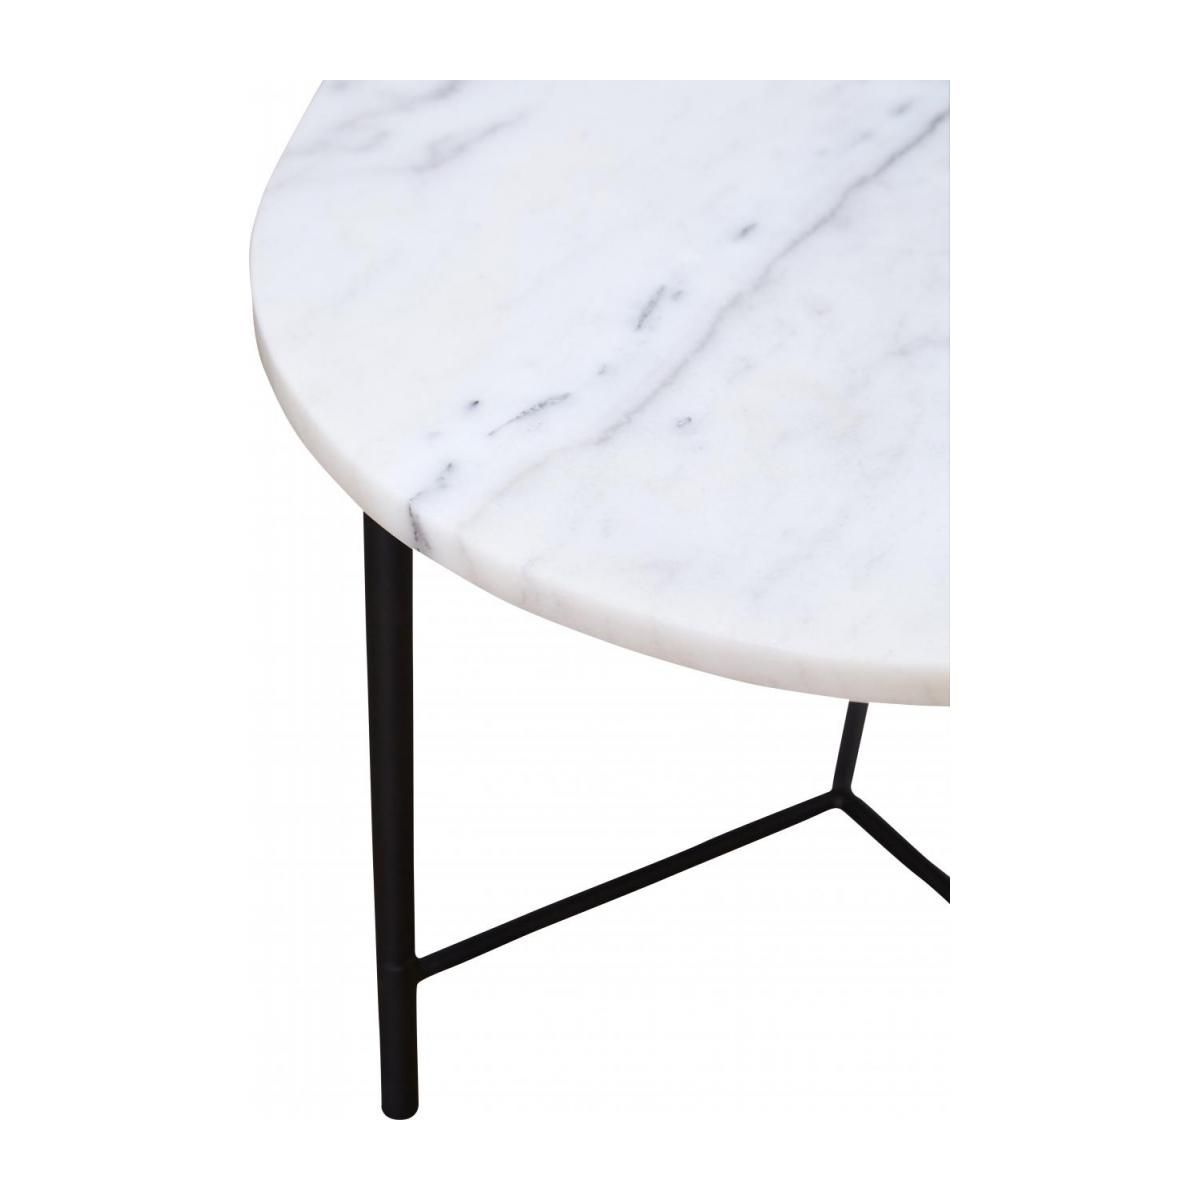 Goldie Table Basse Ovale Marbre Blanc Table Basse Ovale Table Basse Marbre Blanc Et Table Basse